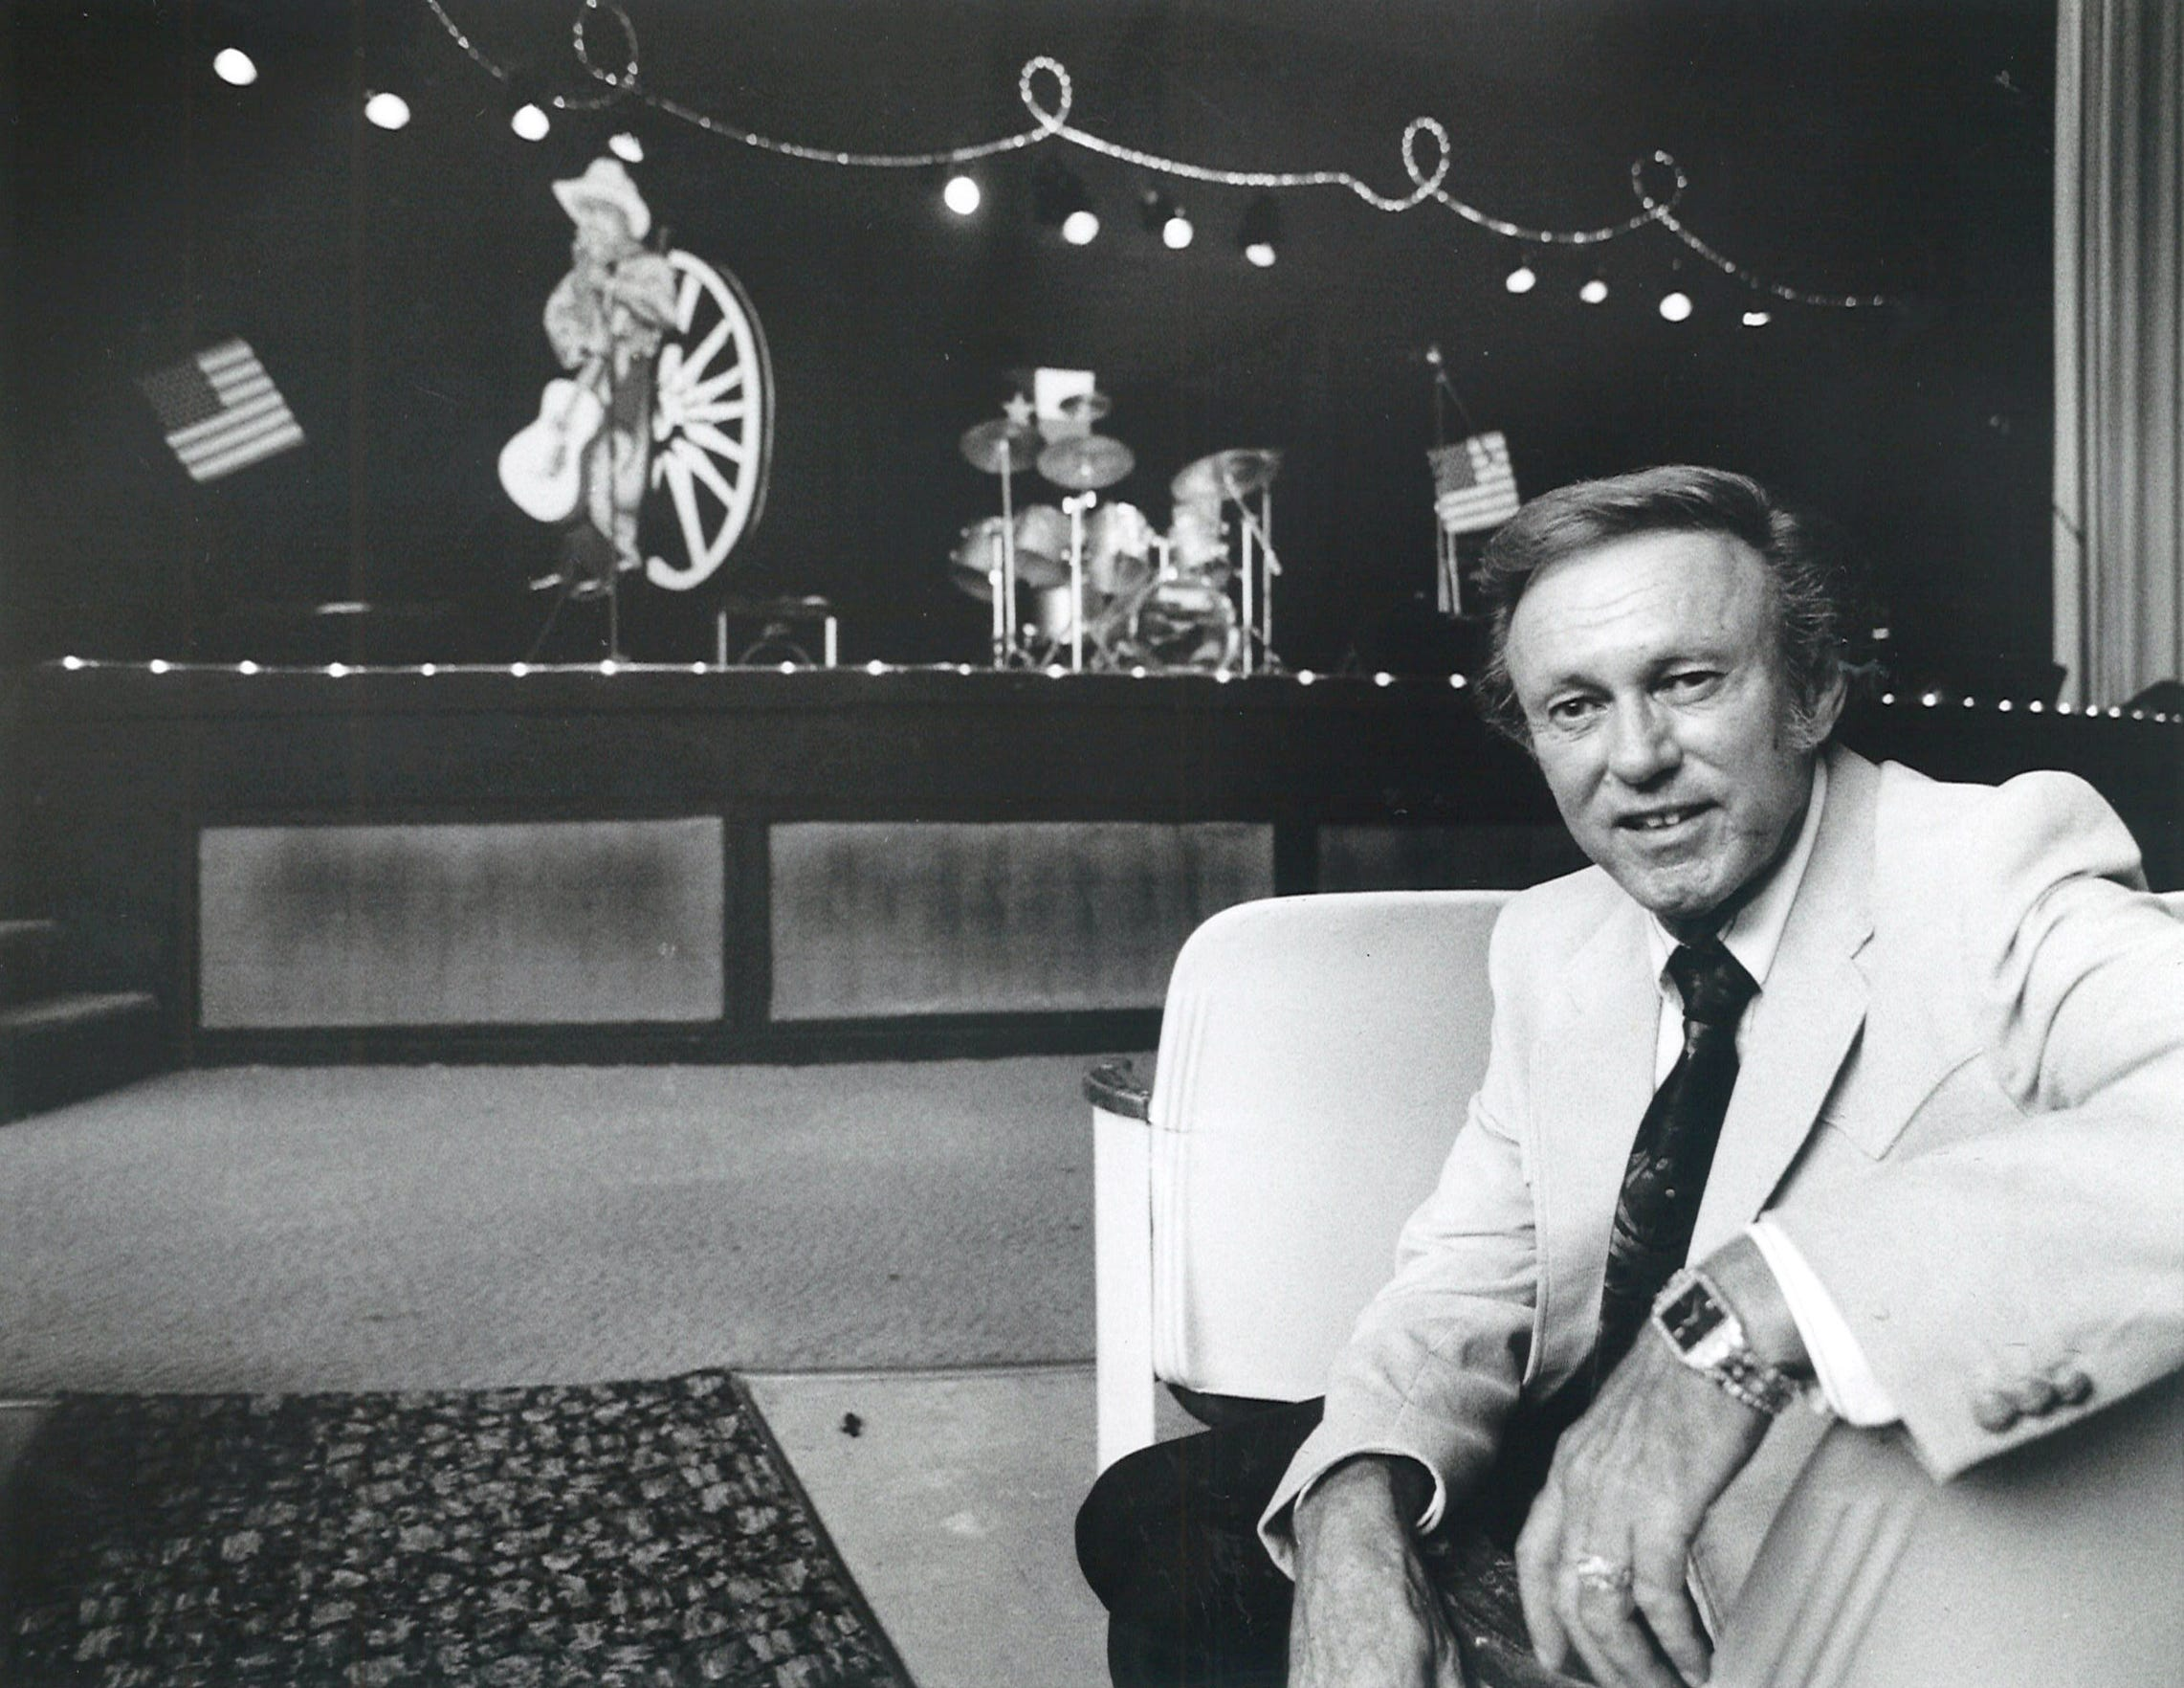 Dexter Wright, owner of Centre Theatre in downtown Corpus Christi, sits in a second row seat of thi sheathre with the stage in the background on Aug. 20, 1992. His family-oriented country and western music theater show held a grand opening the following night. The theater was briefly rebranded as D.W.'s Country Show Place.